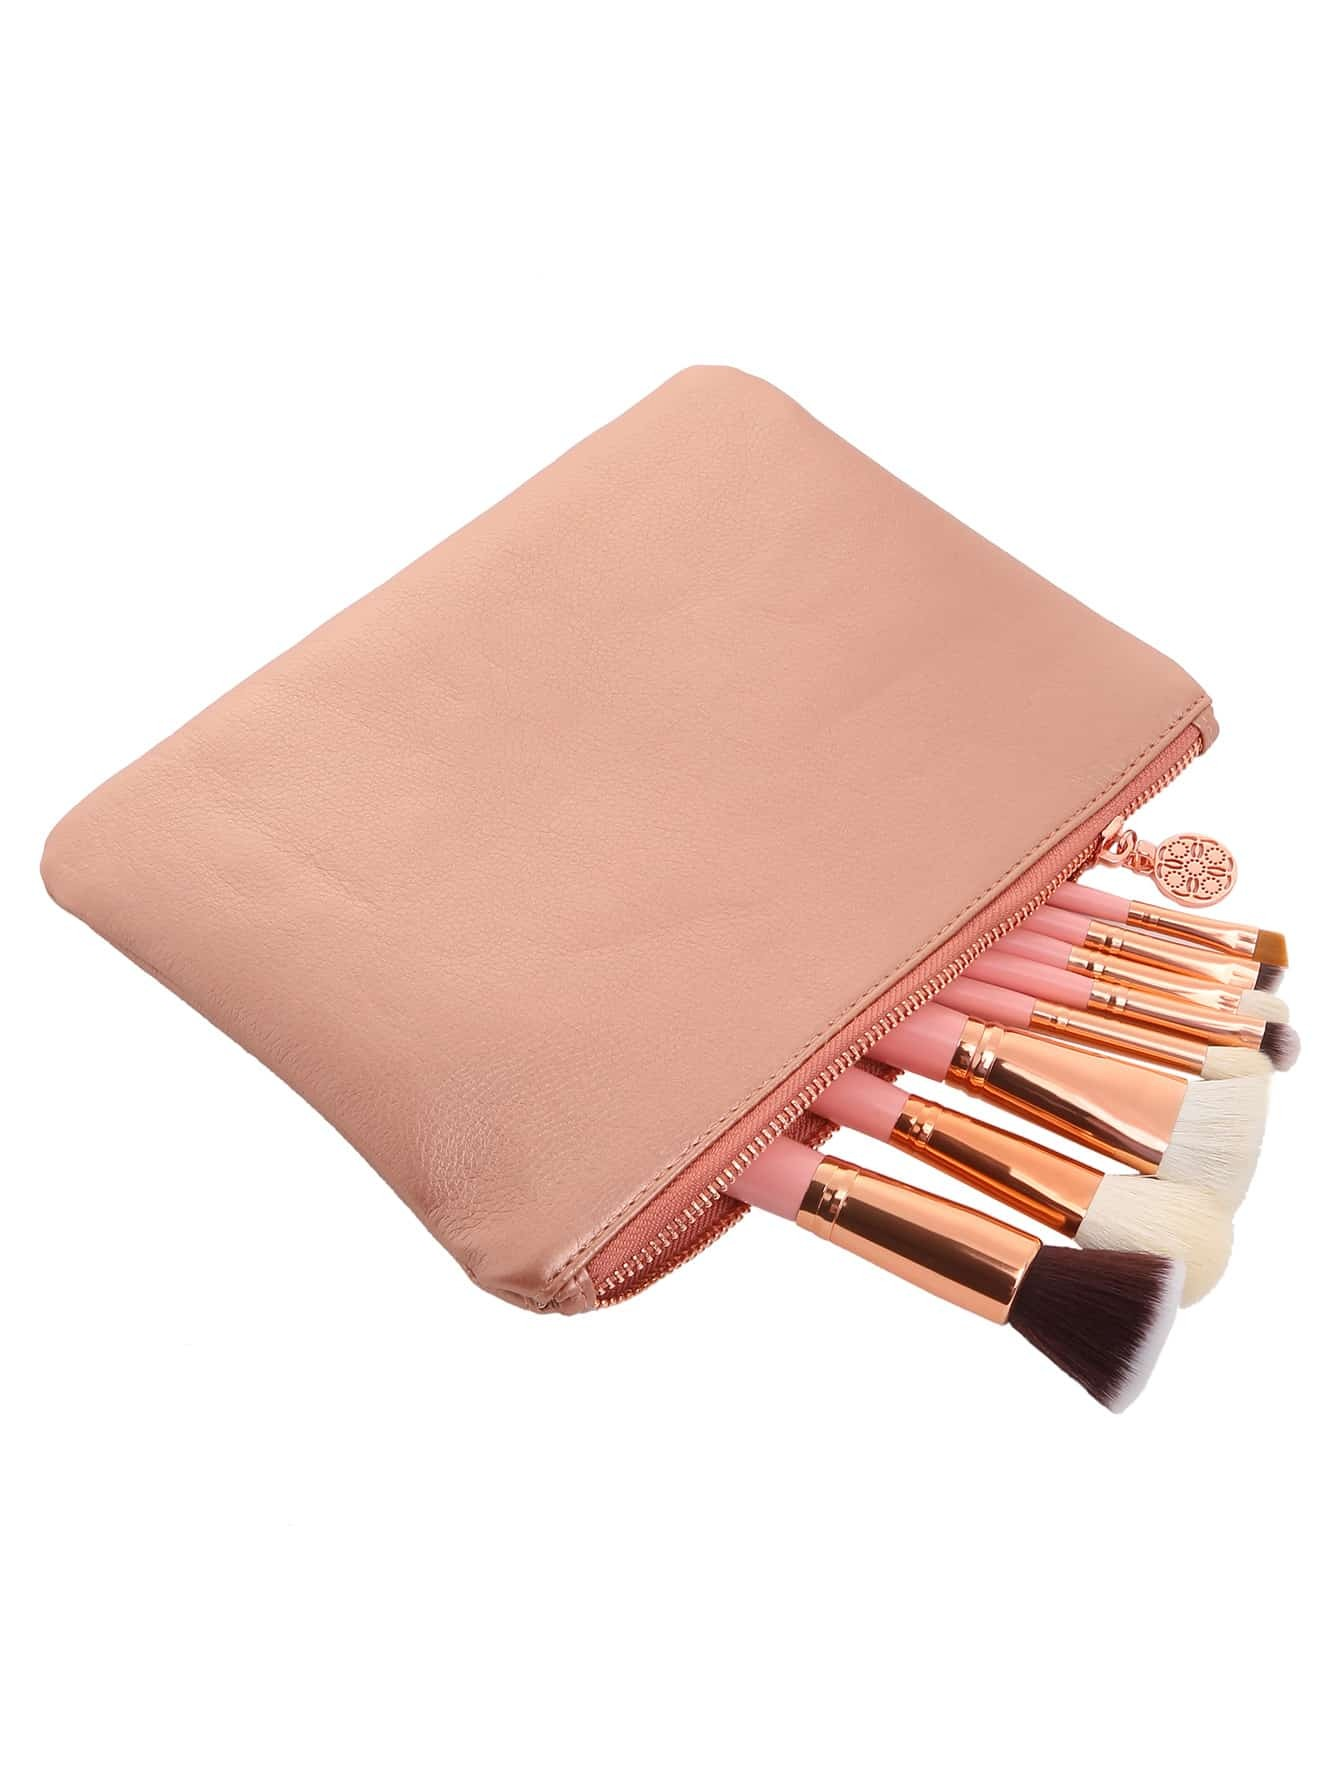 8 PCS Makeup Brushes With Bag8 PCS Makeup Brushes With Bag<br><br>color: Pink<br>size: None